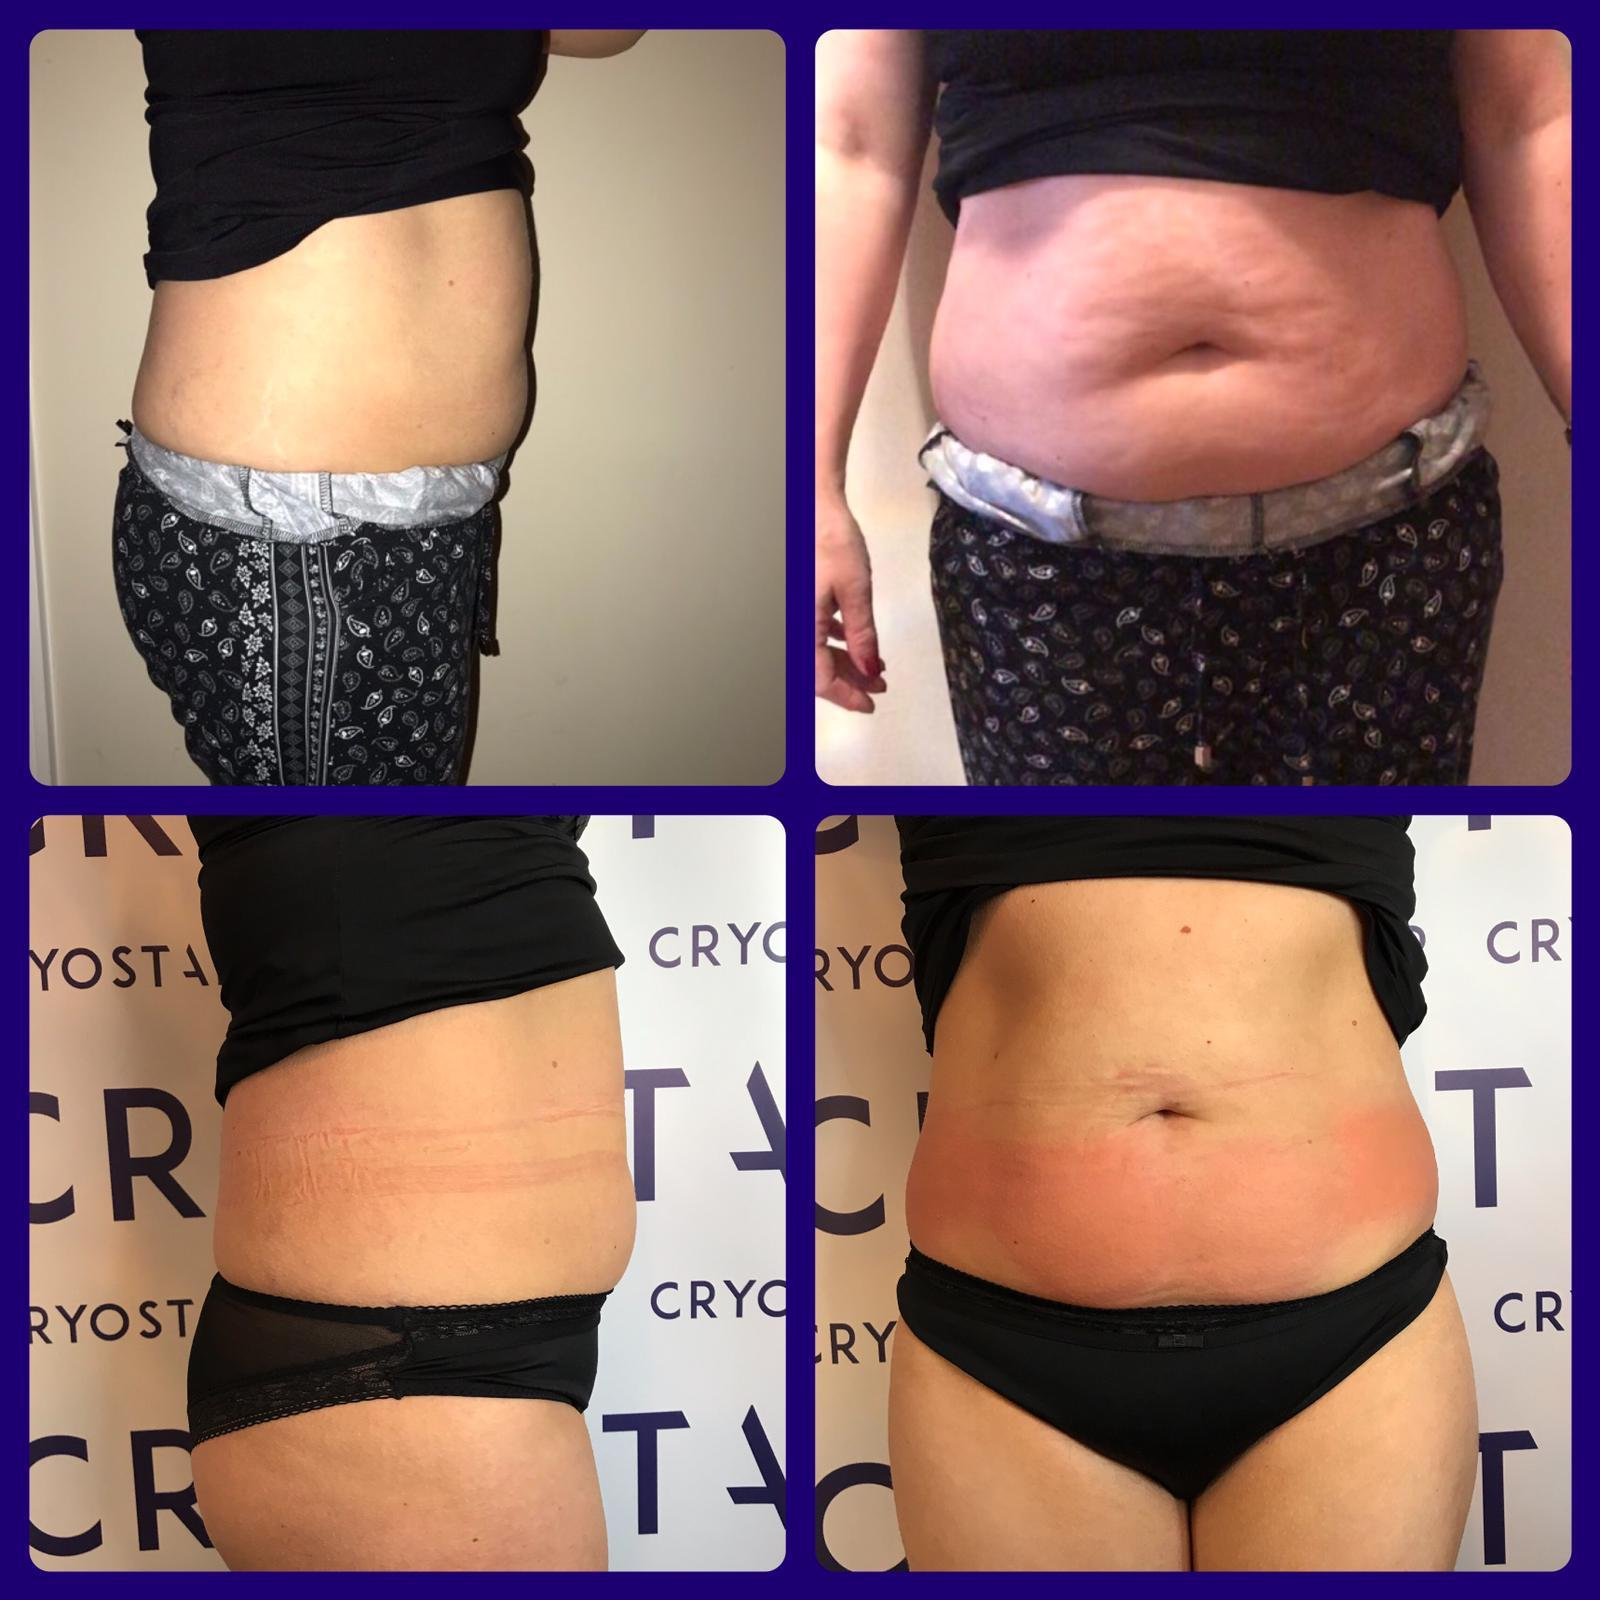 CryoSlimming before and after